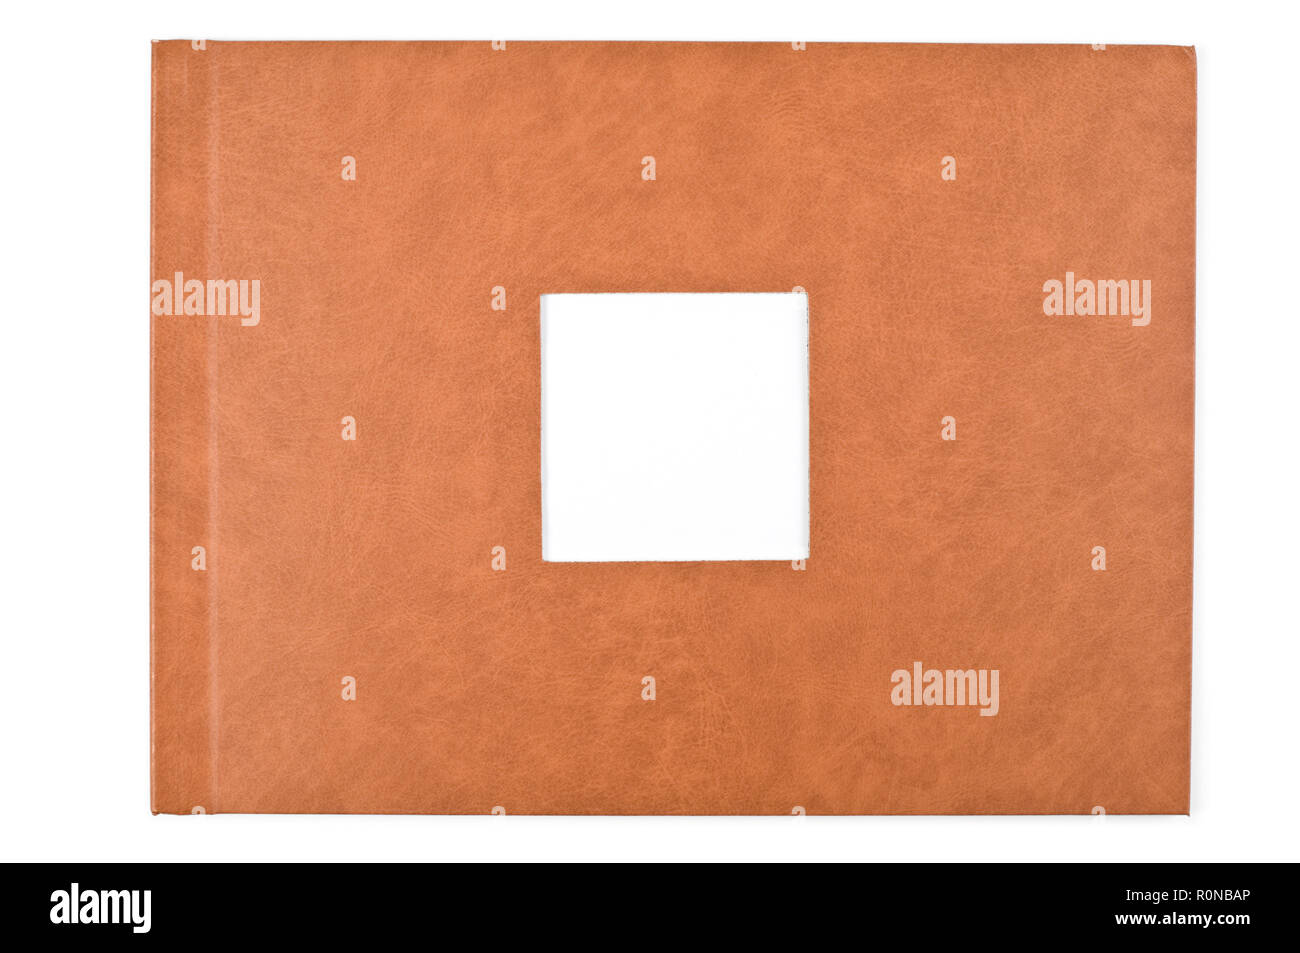 Photo album cover with empty space for your own photo. - Stock Image